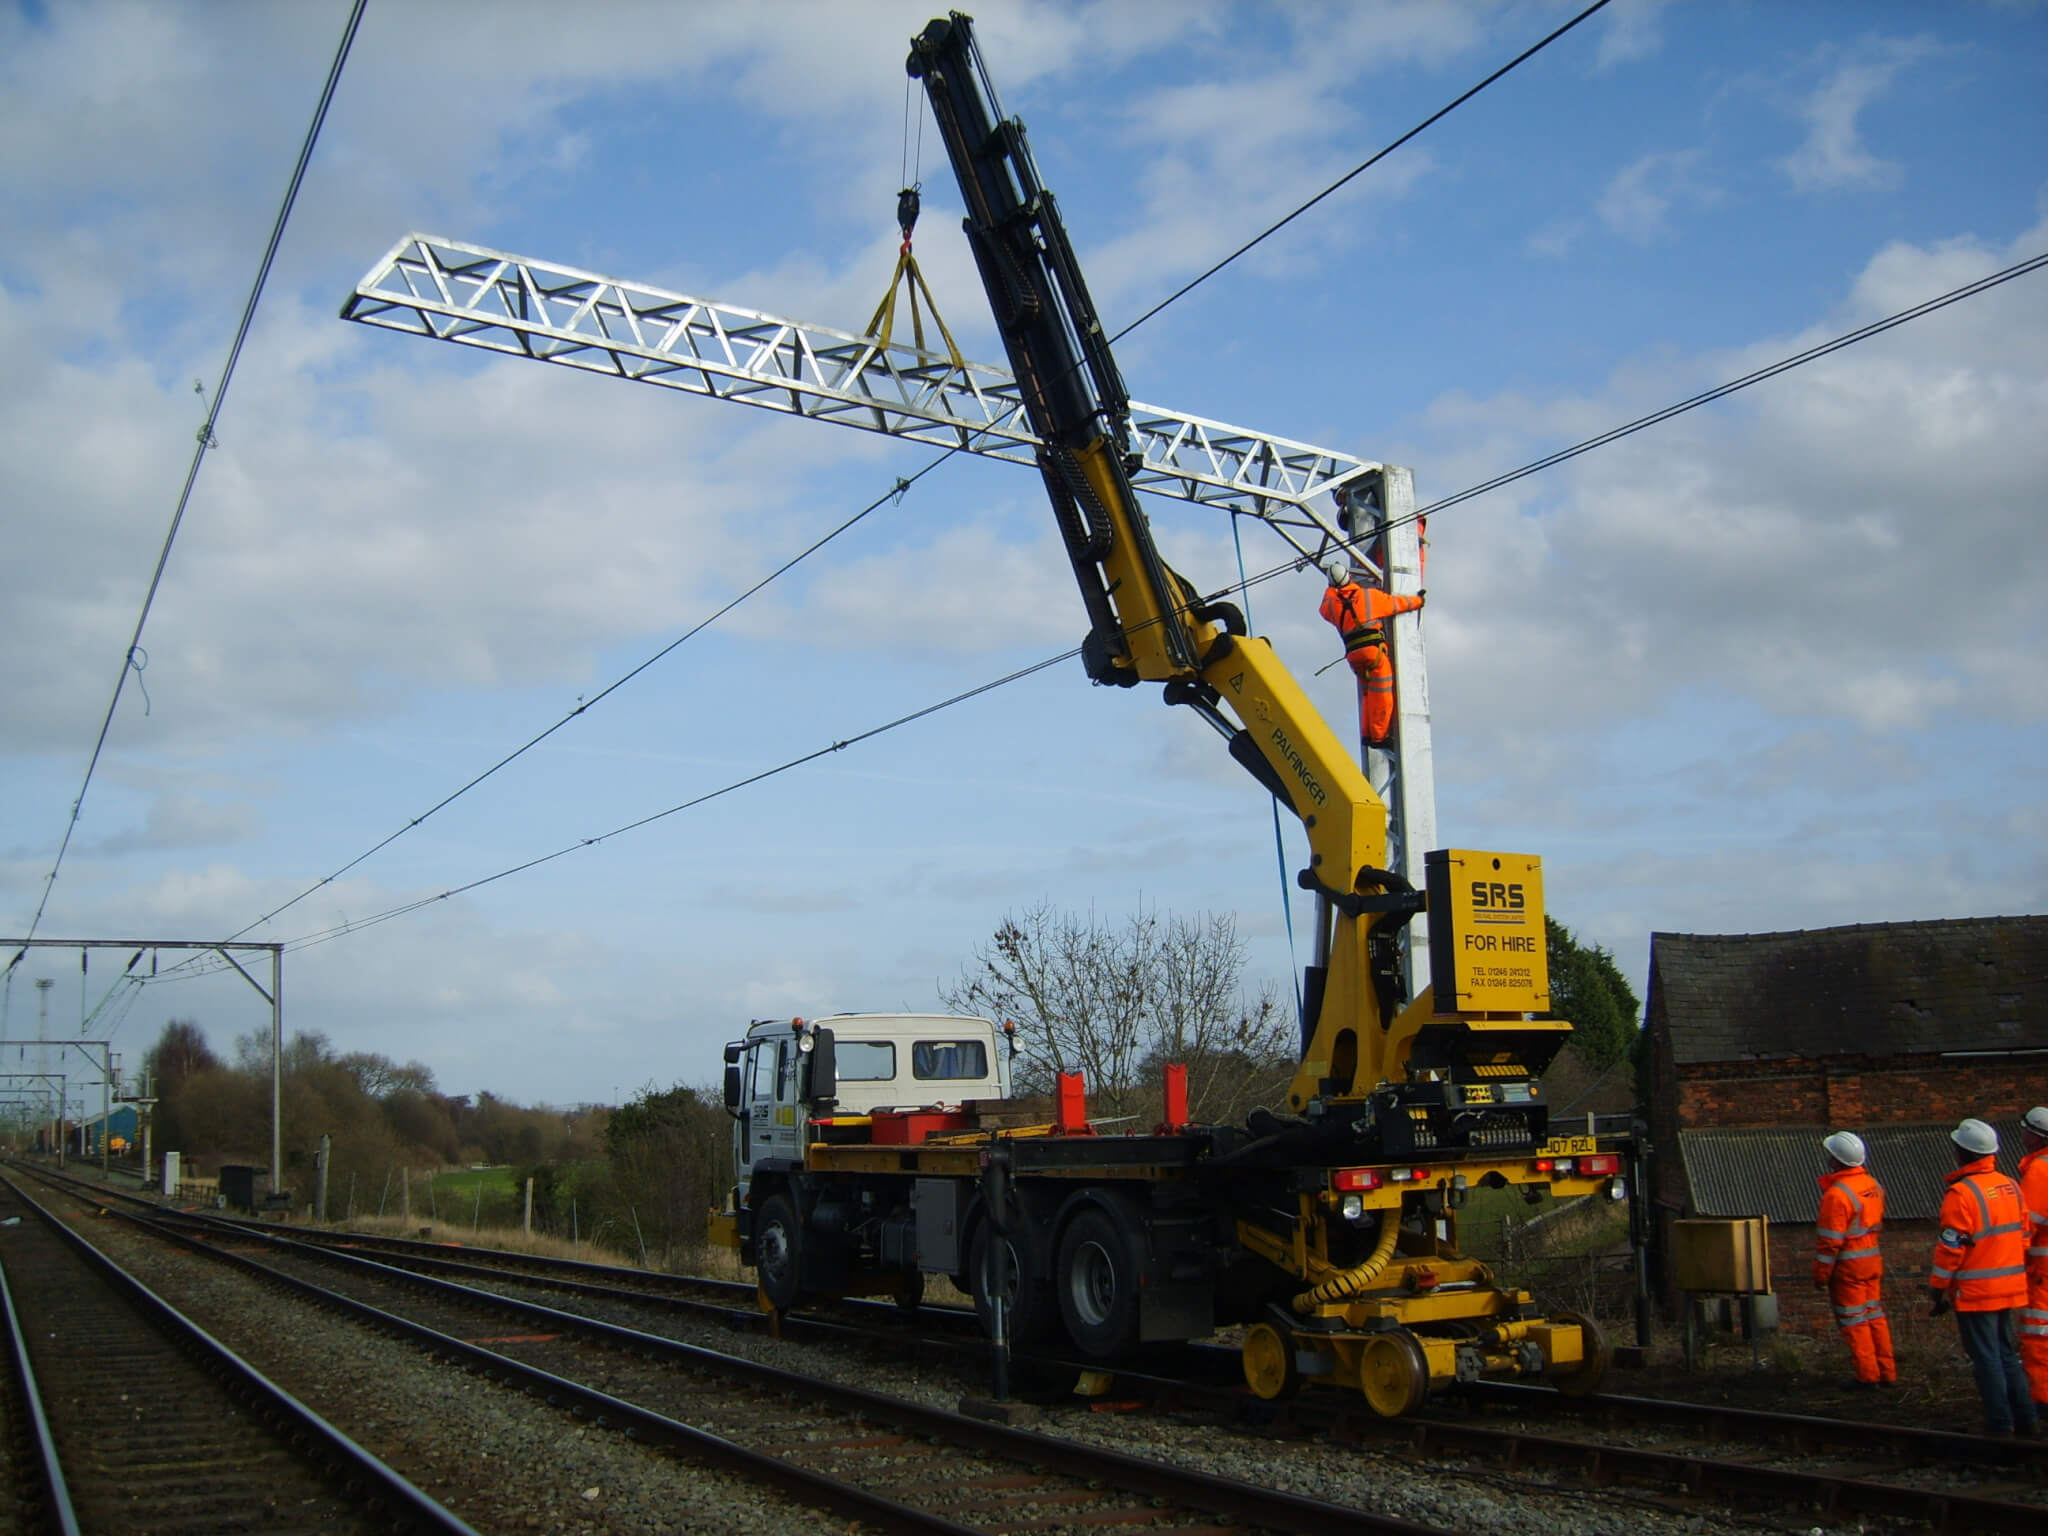 SRS Hire Fleet, One of many Lorry Loader RRV operated by SRS Rail System International, Contact us to discuss your requirements.